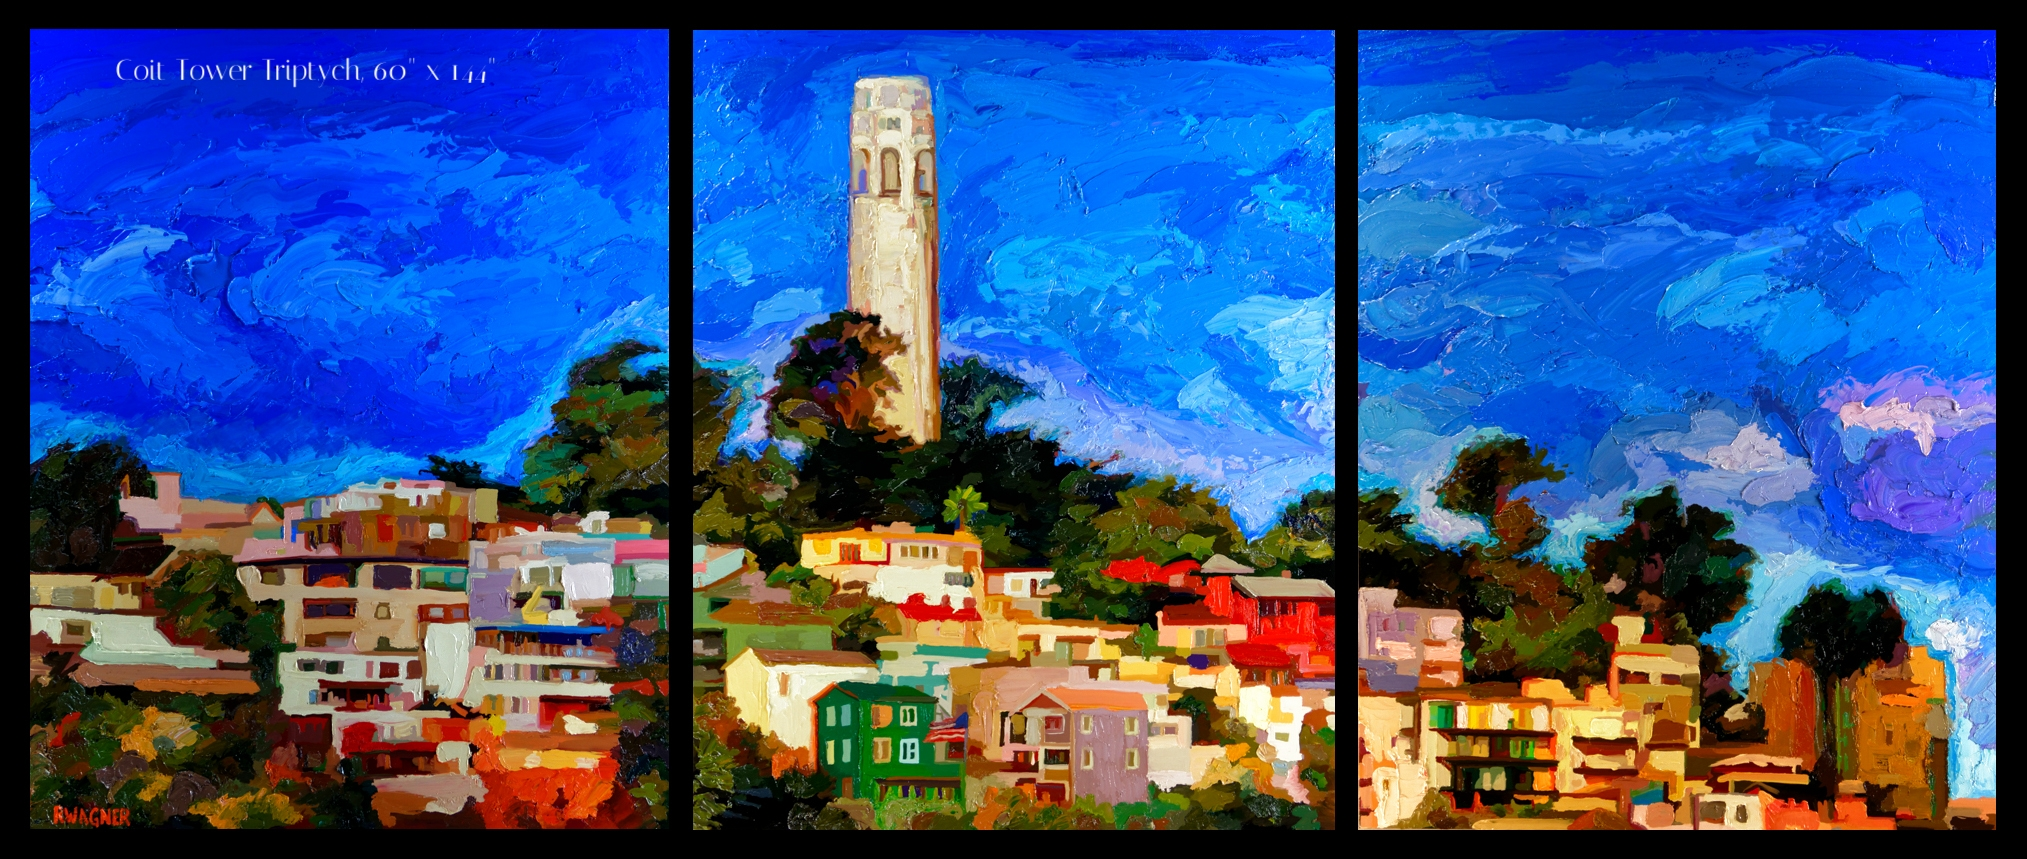 Coit Tower Triptych